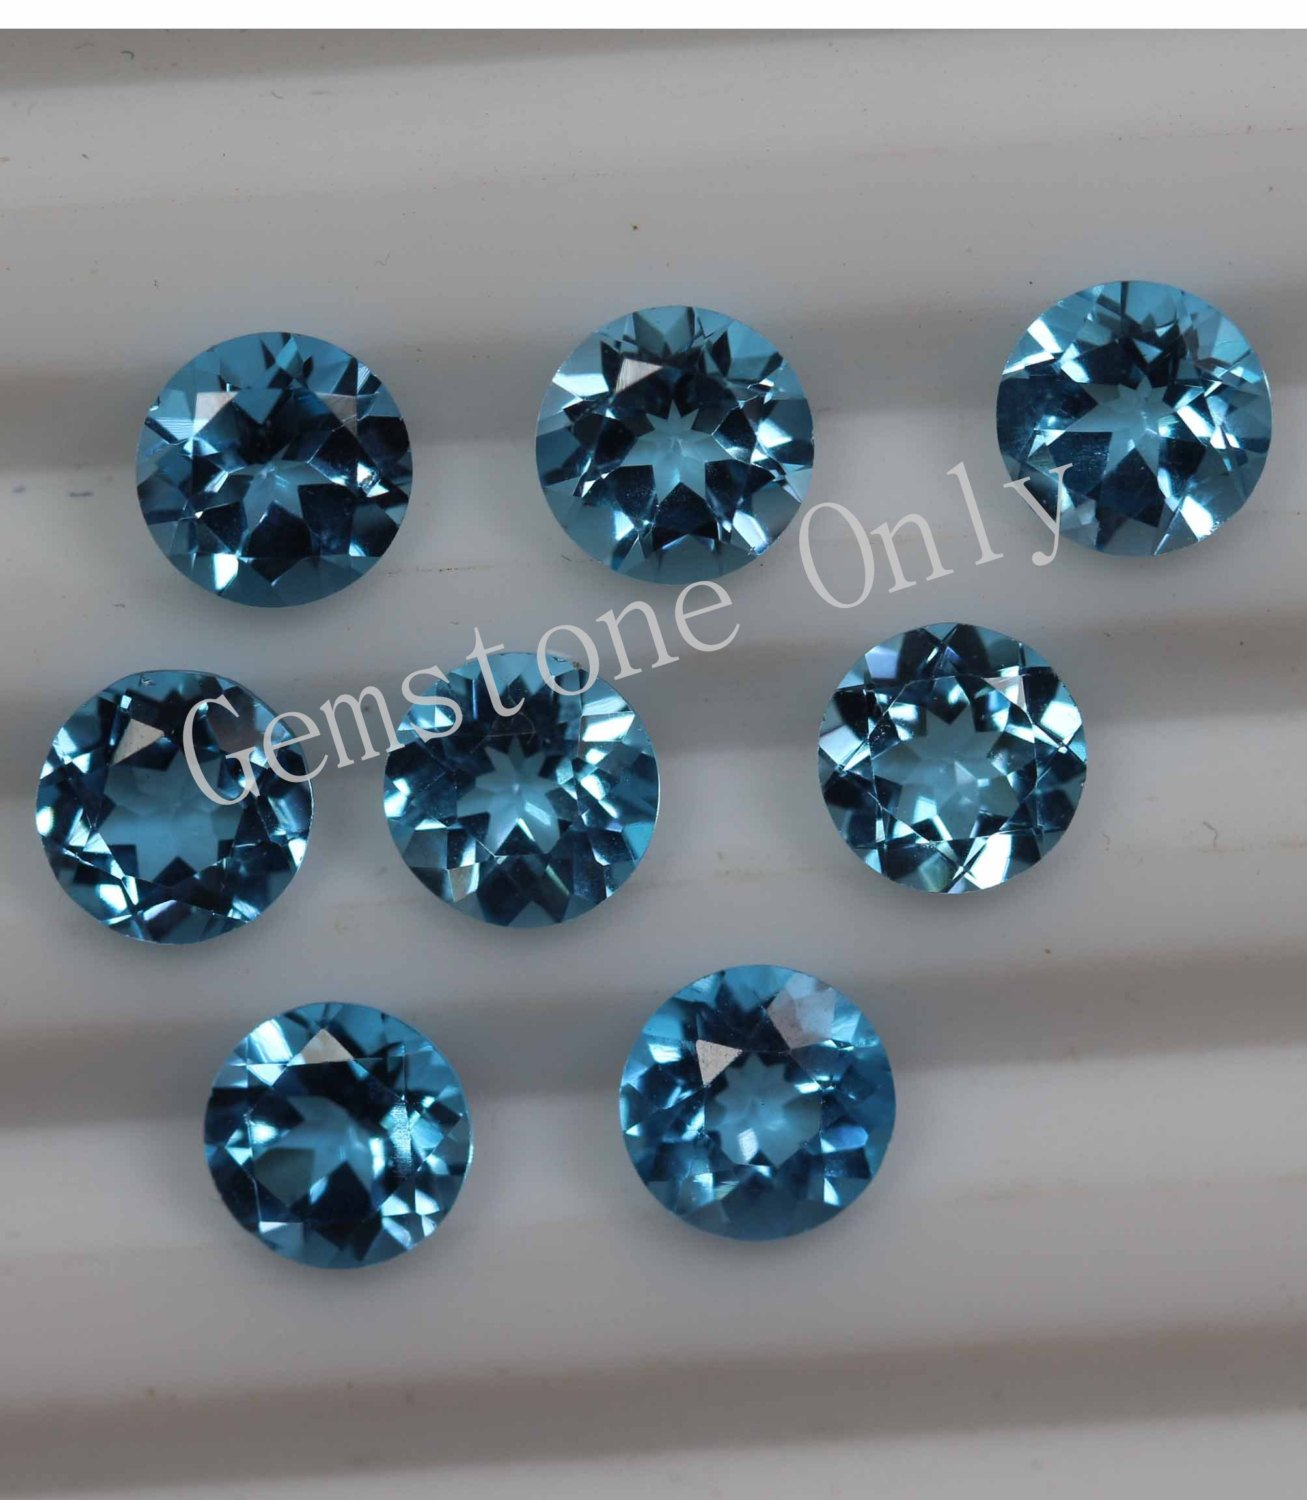 6mm Natural Swiss Blue topaz Faceted Cut Round 25 Pieces Blue Color Calibrated Size Loose Gemstone